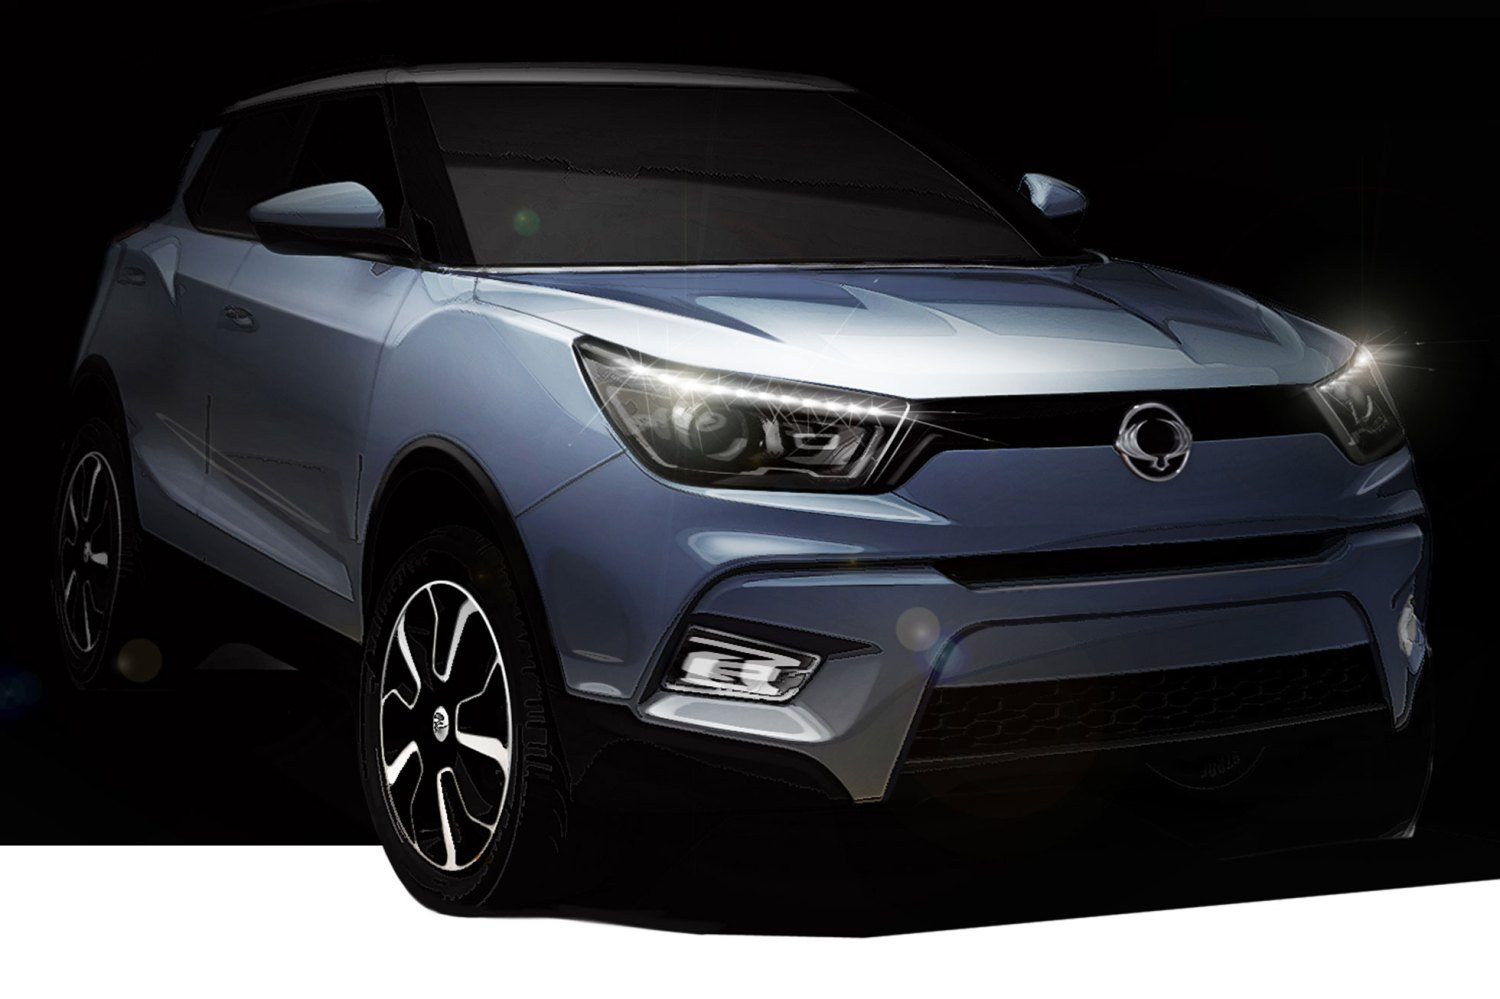 SsangYong teases Juke-rivalling Tivolo crossover